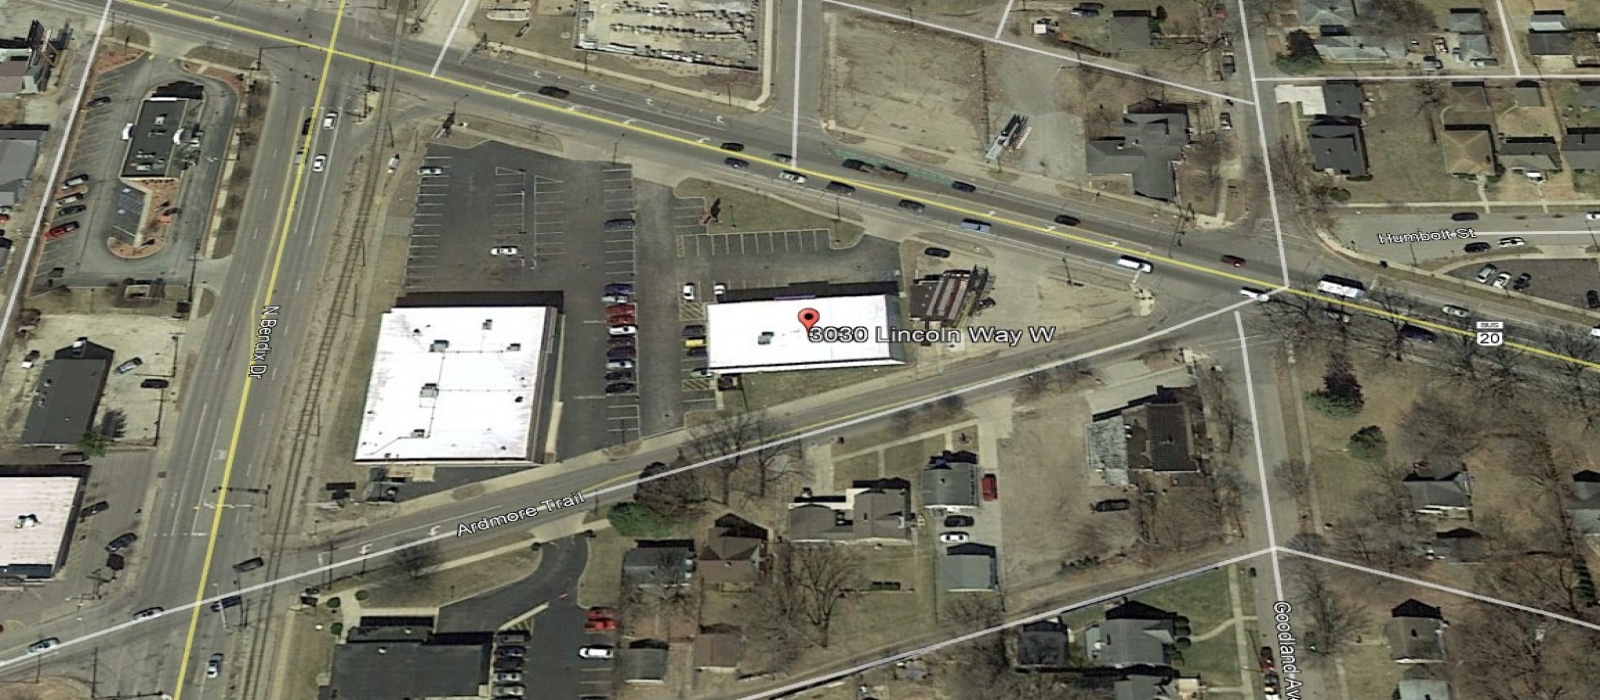 3030 W. Lincoln Way, South Bend, Indiana 46628, ,Retail,For Sale,3030 W. Lincoln Way,1046